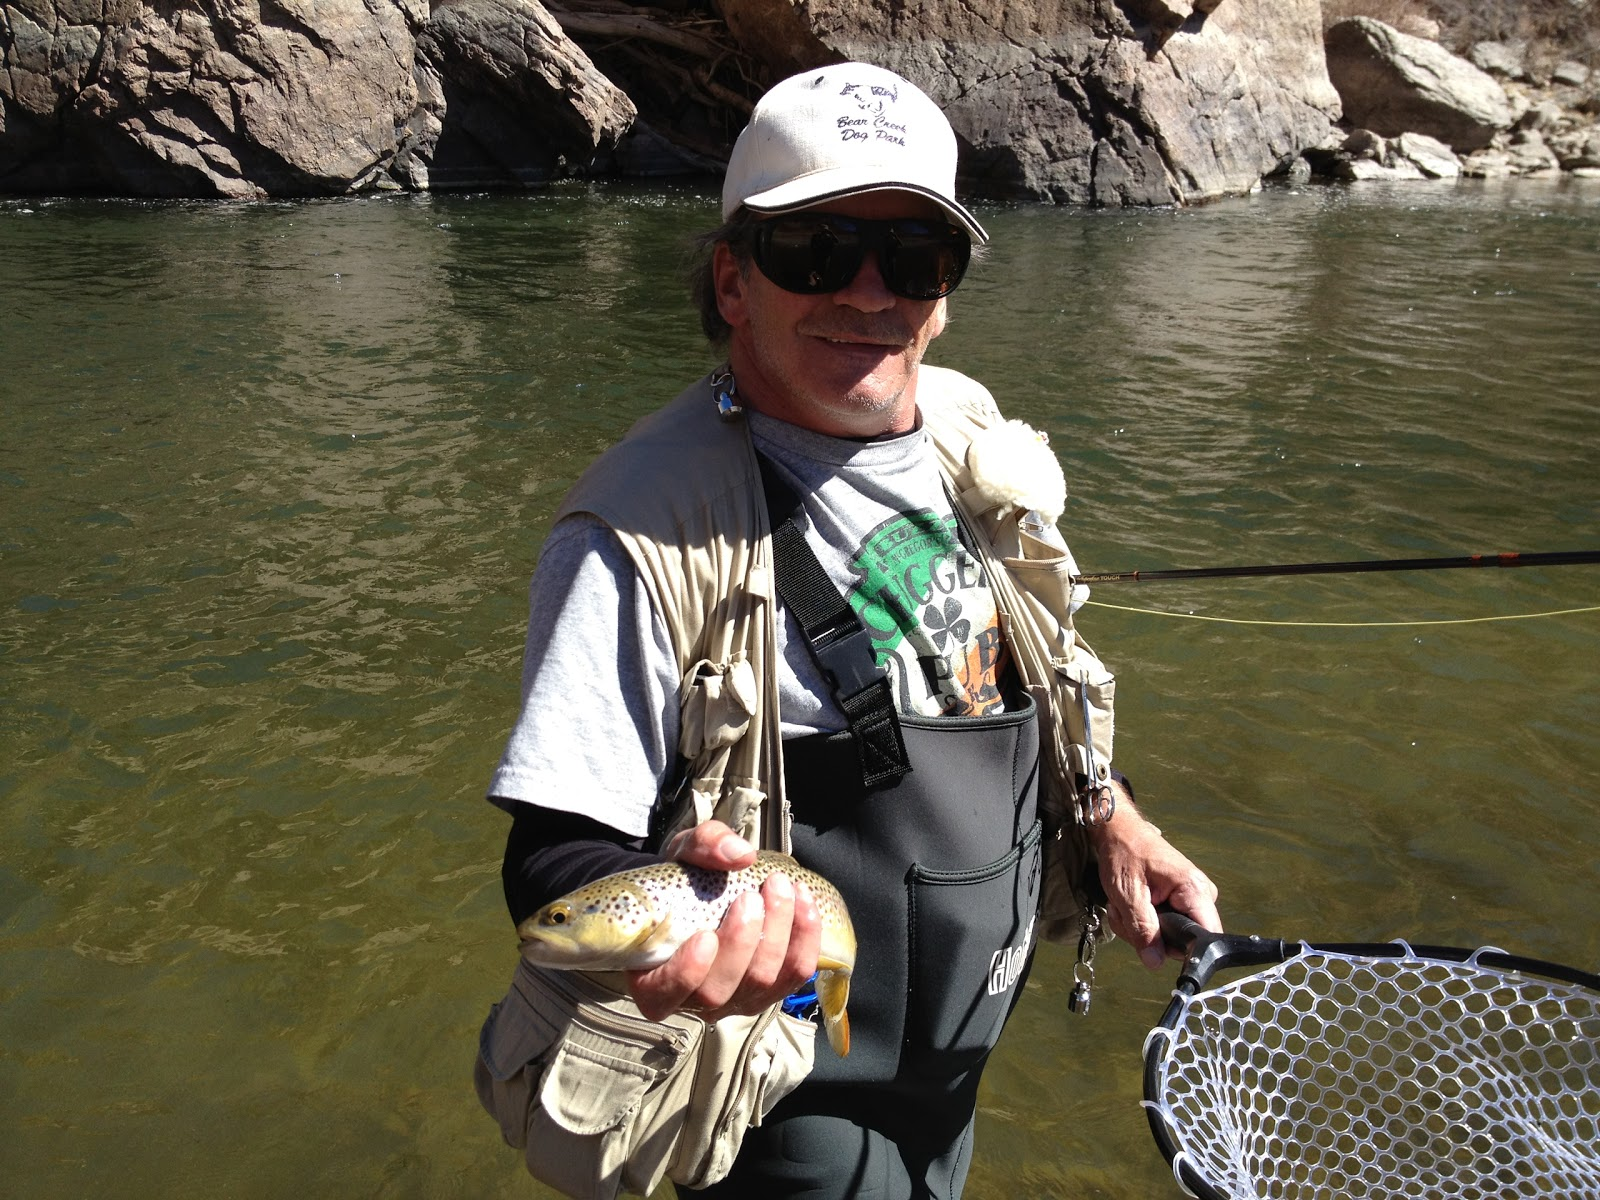 Jamie 39 s fly fishing journal arkansas river canyon city for Fly fishing journal